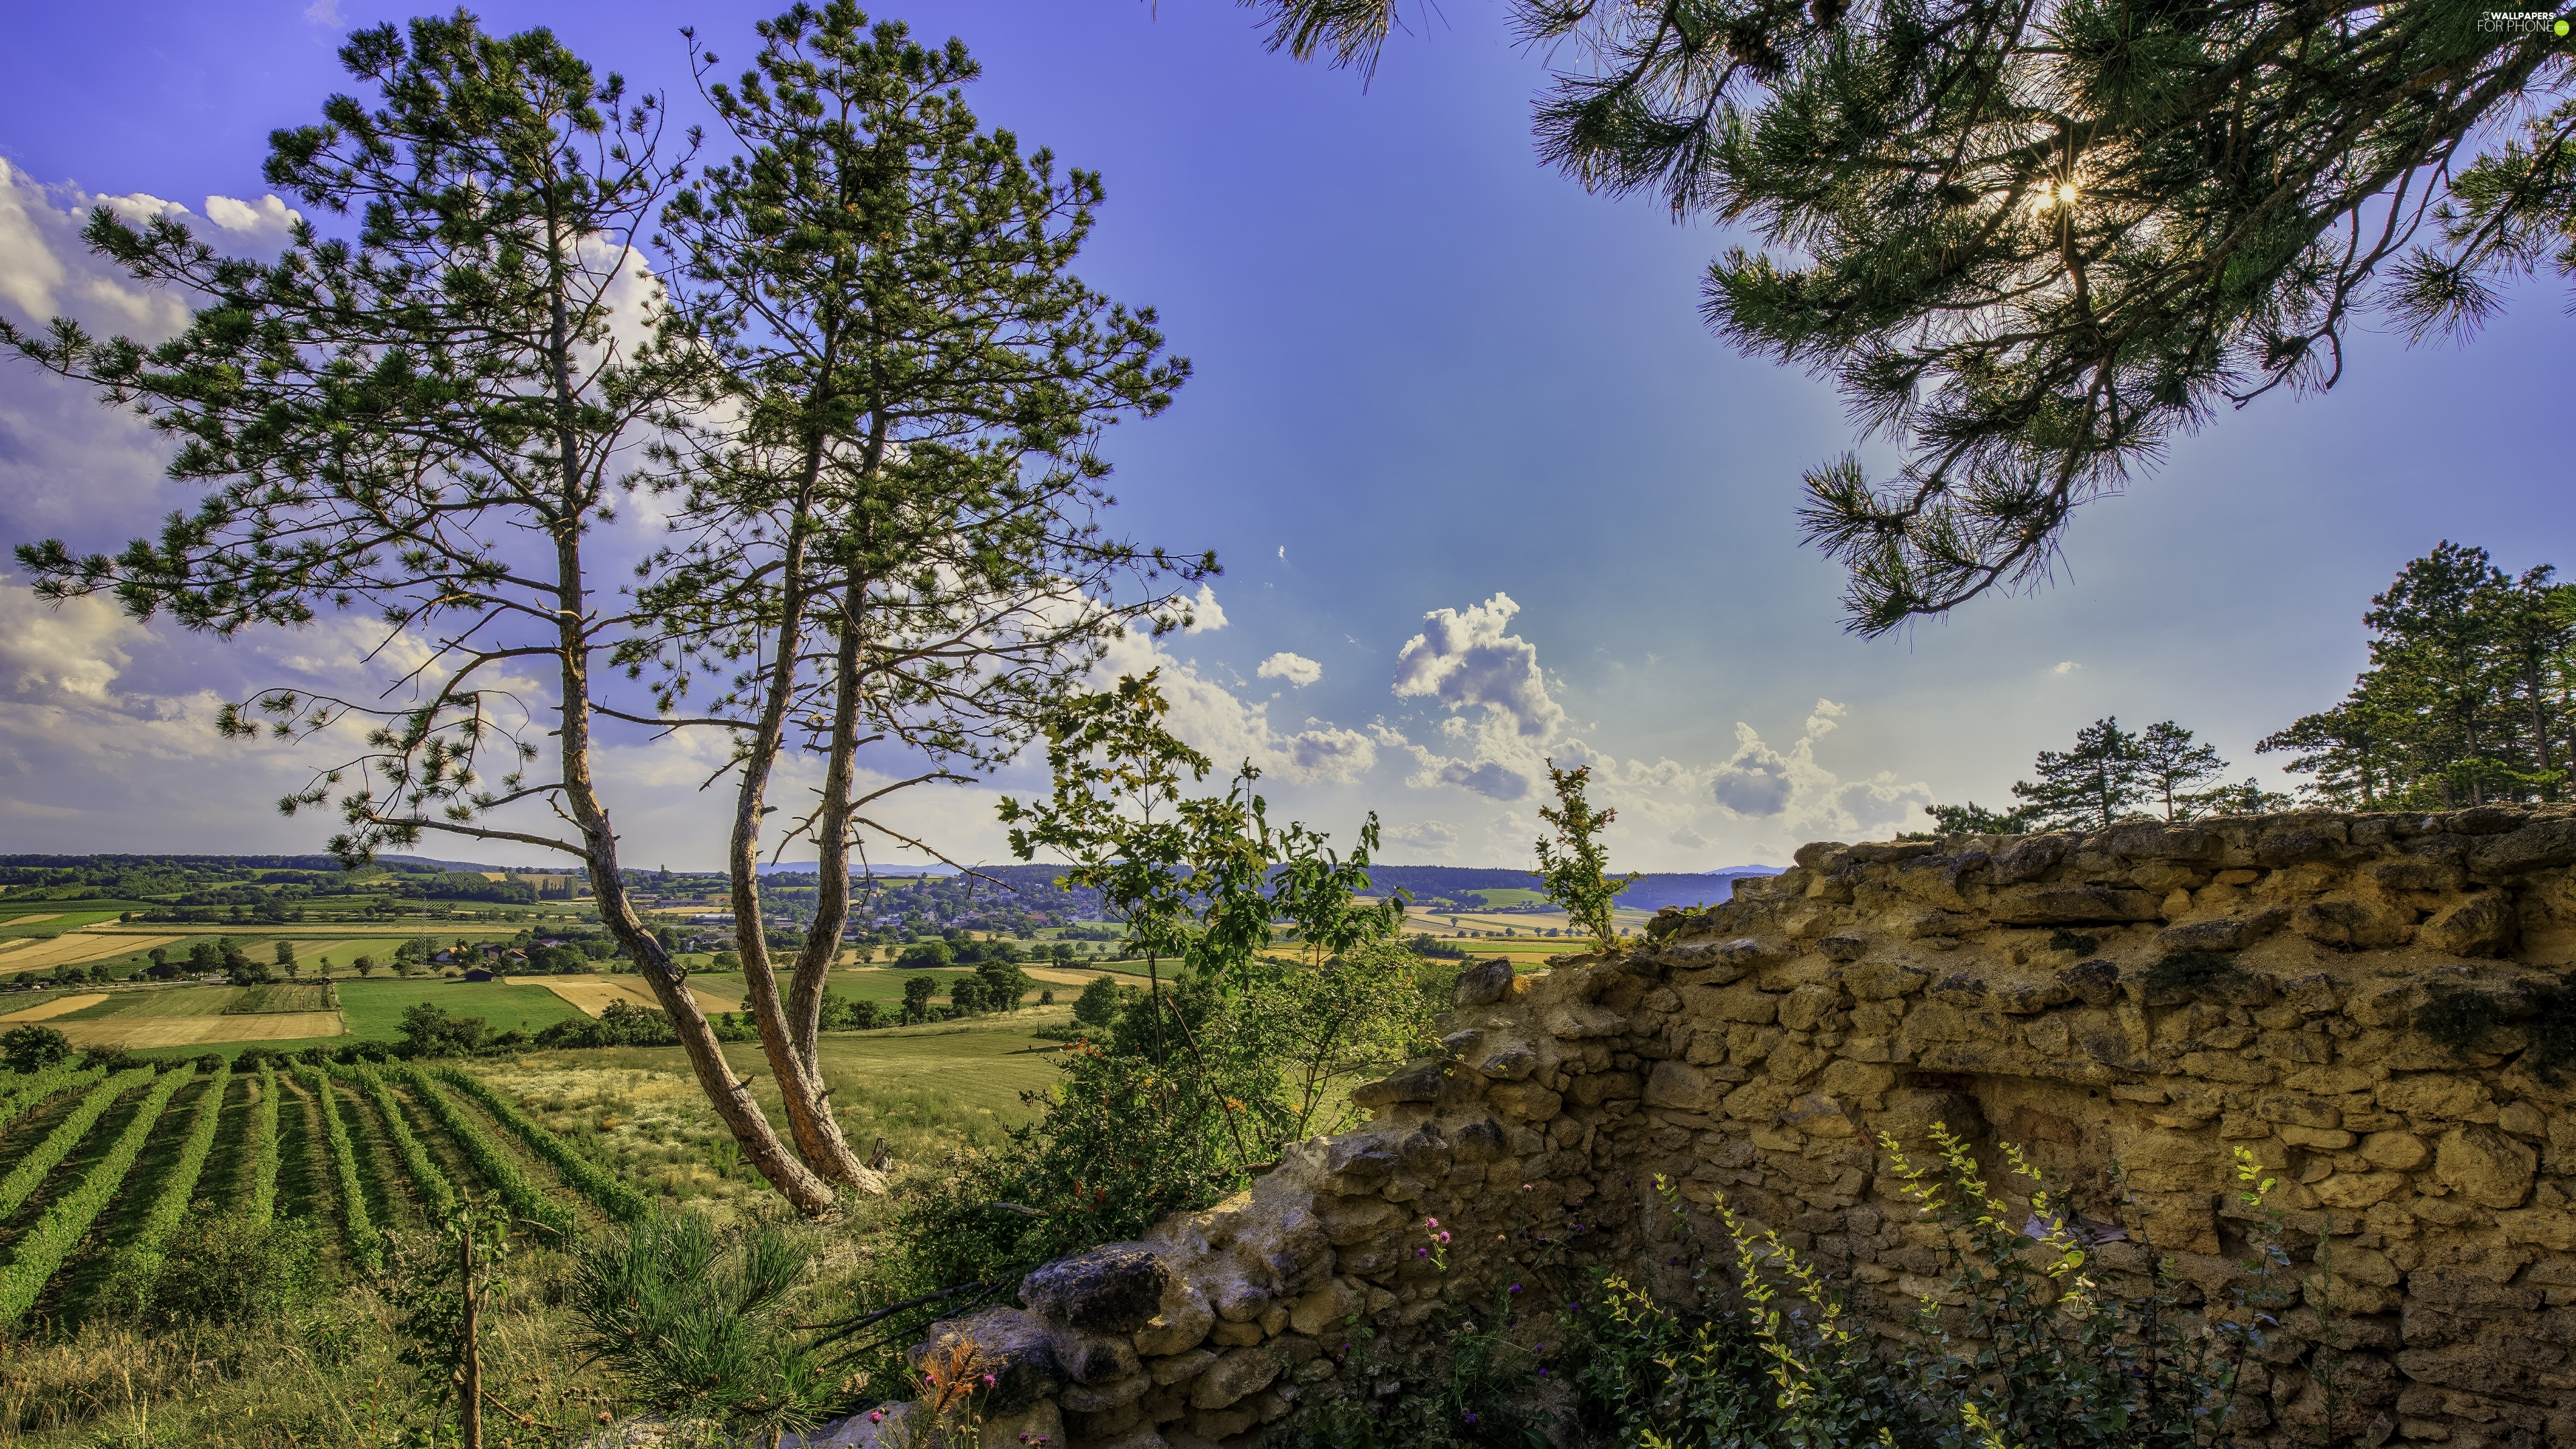 stone, trees, field, summer, ledge, viewes